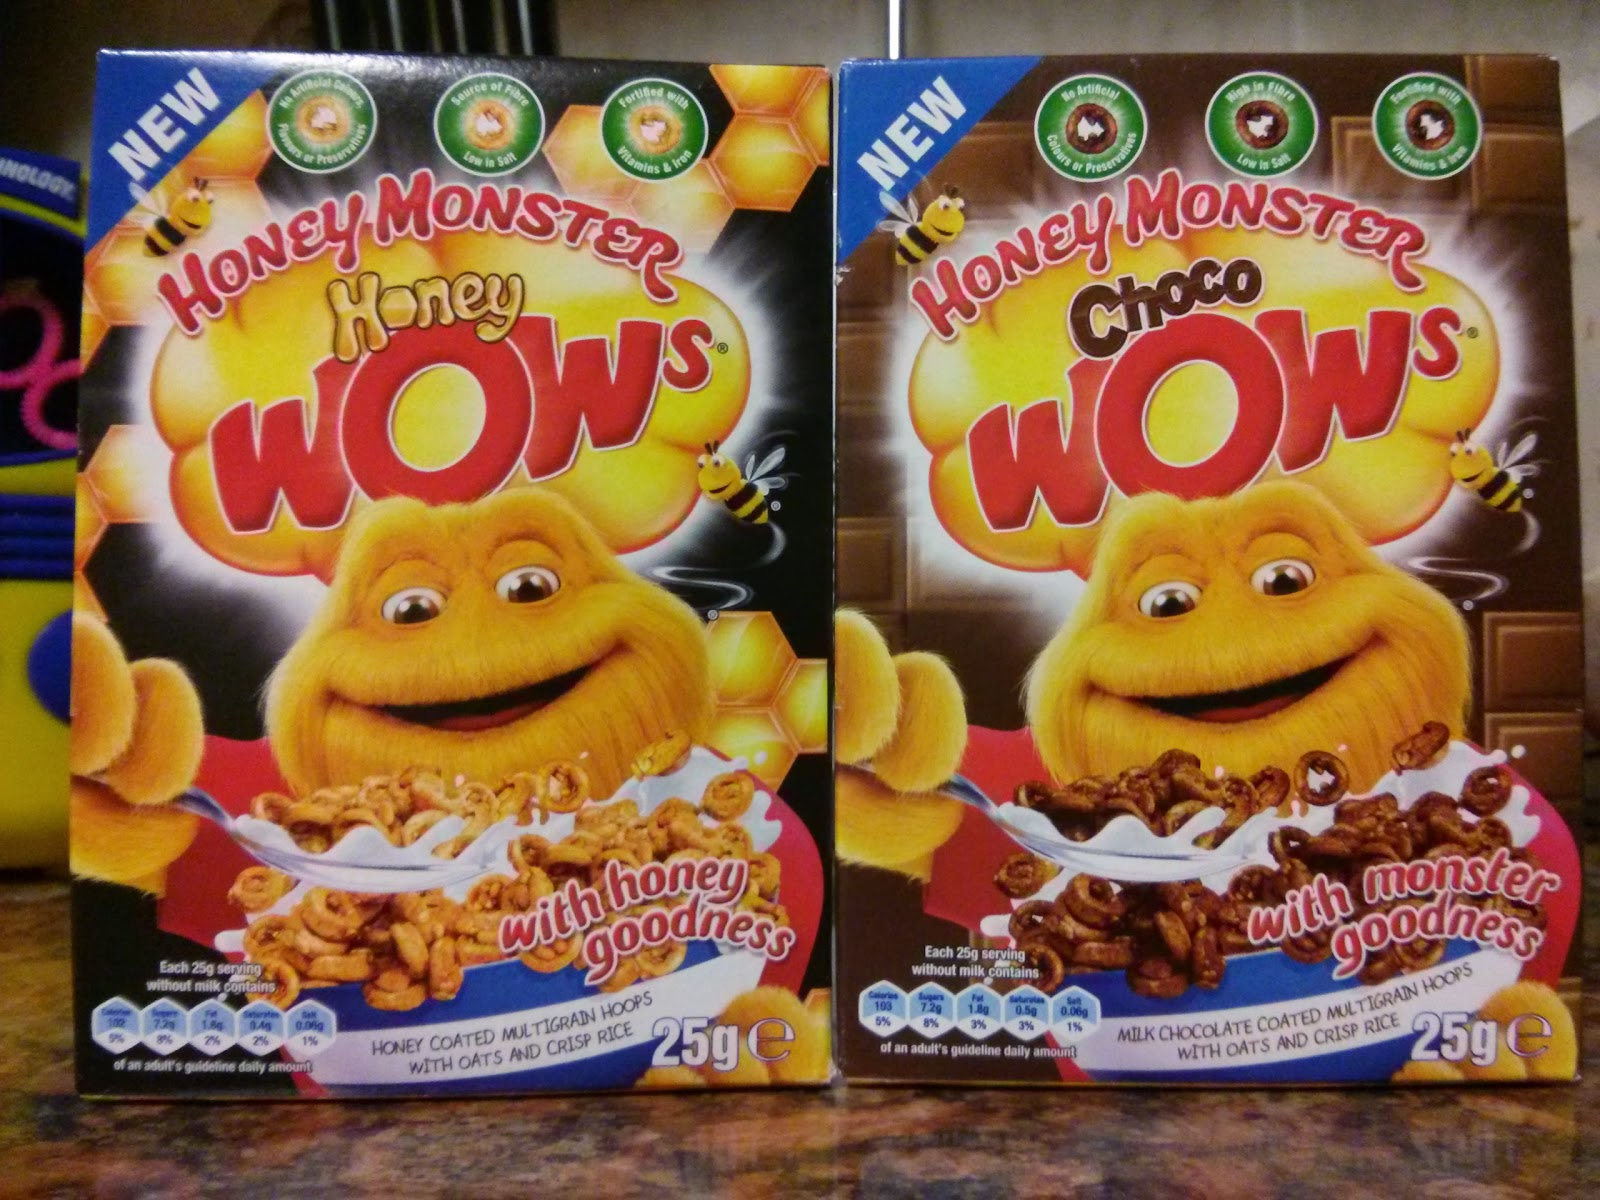 Honey Monster Wow's